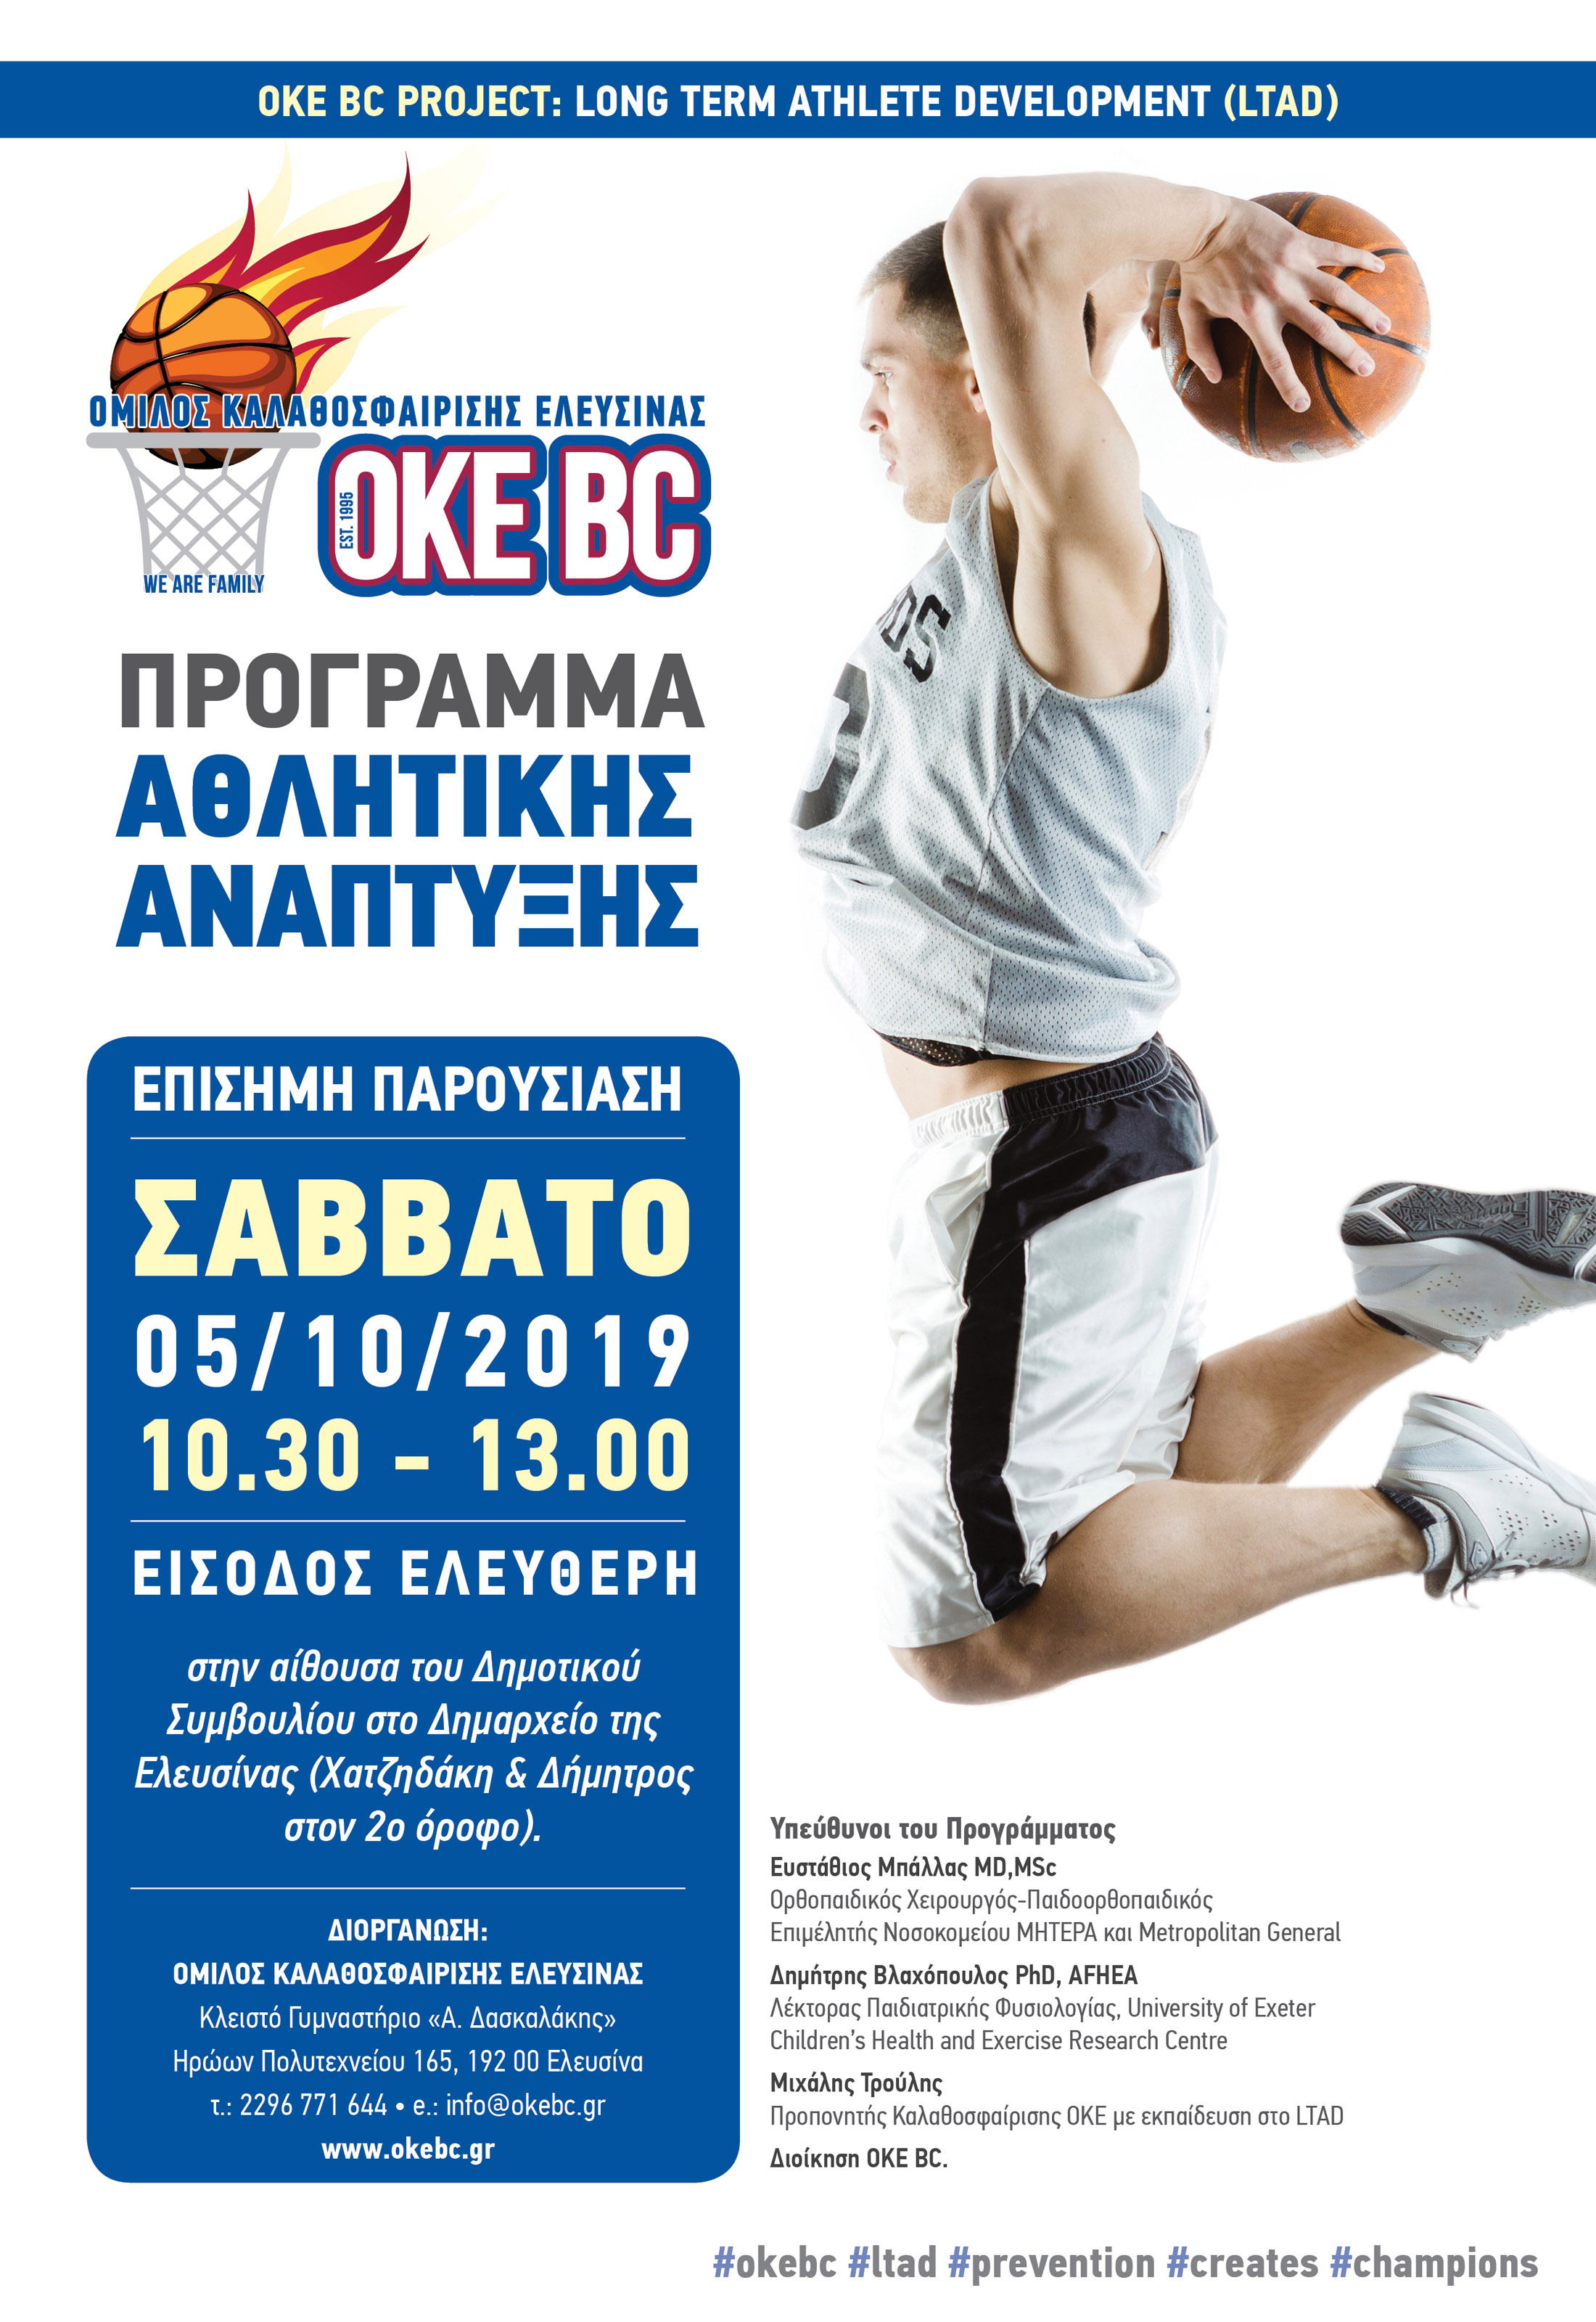 LTAD official poster